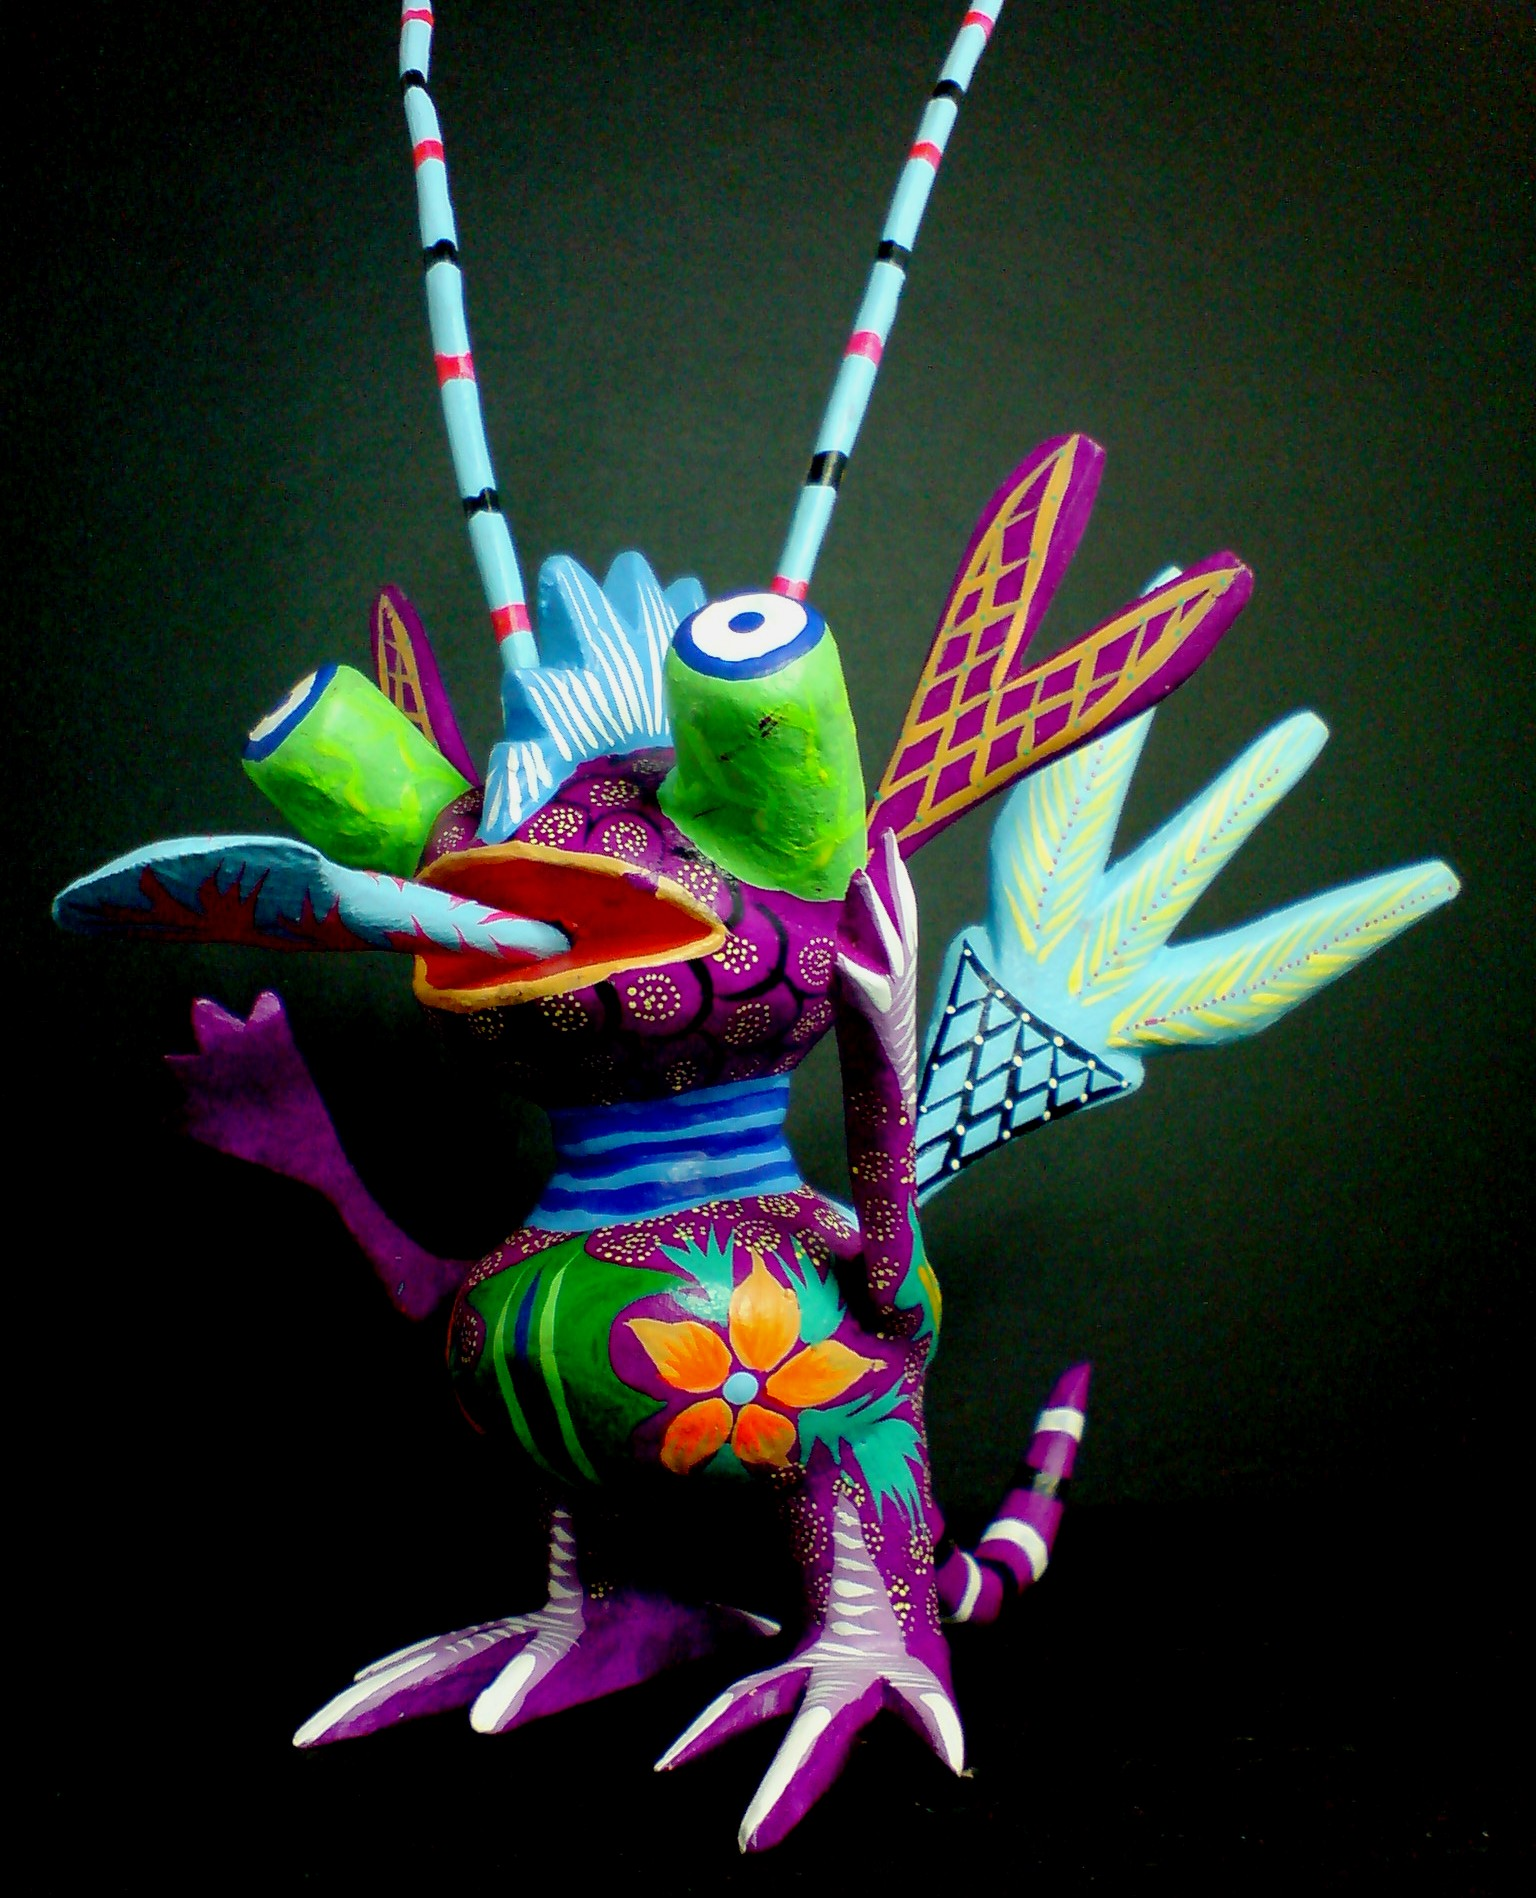 ALEBRIJE_PURPLE_MD_a_01.JPG